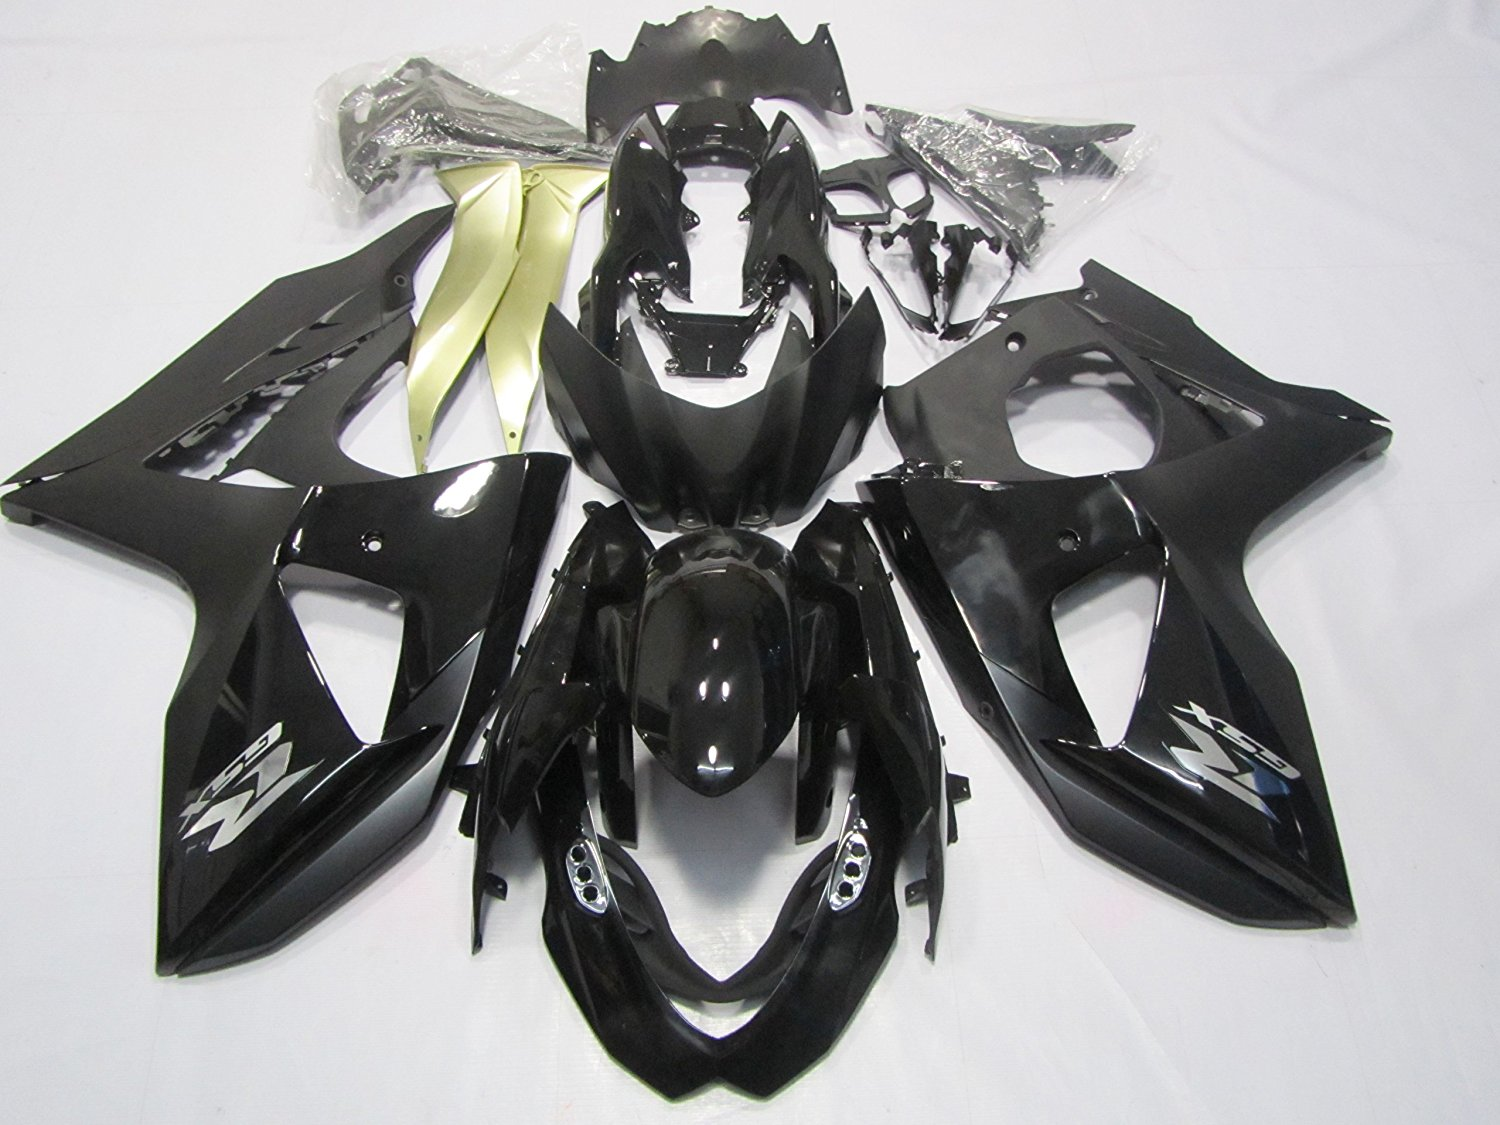 ZXMOTO Unpainted Tail Section Fairing for Suzuki GSXR 750 2011-2013 Individual Motorcycle Fairing